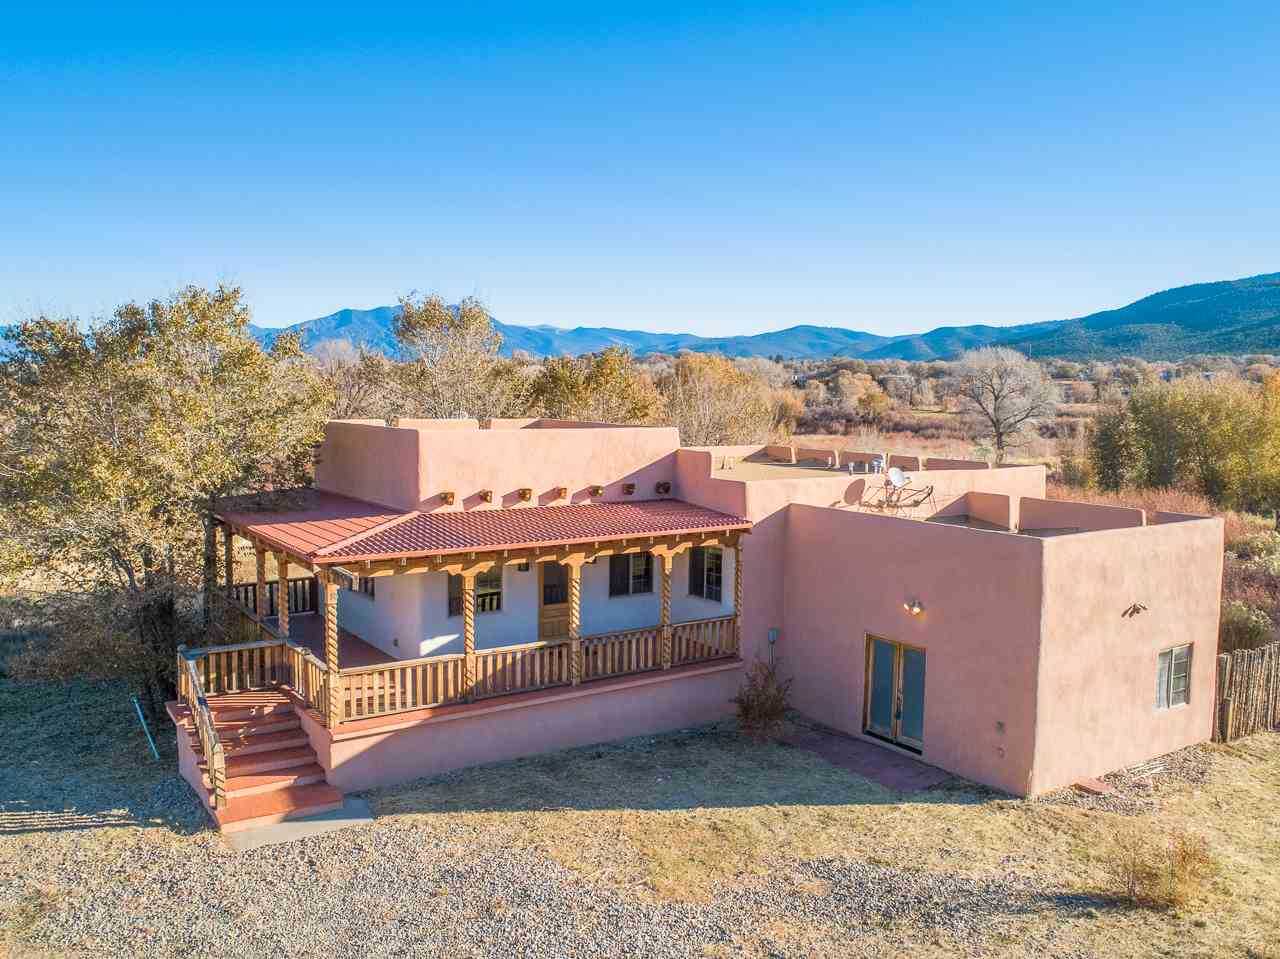 110 Vista del Valle, Ranchos de Taos, NM 87557